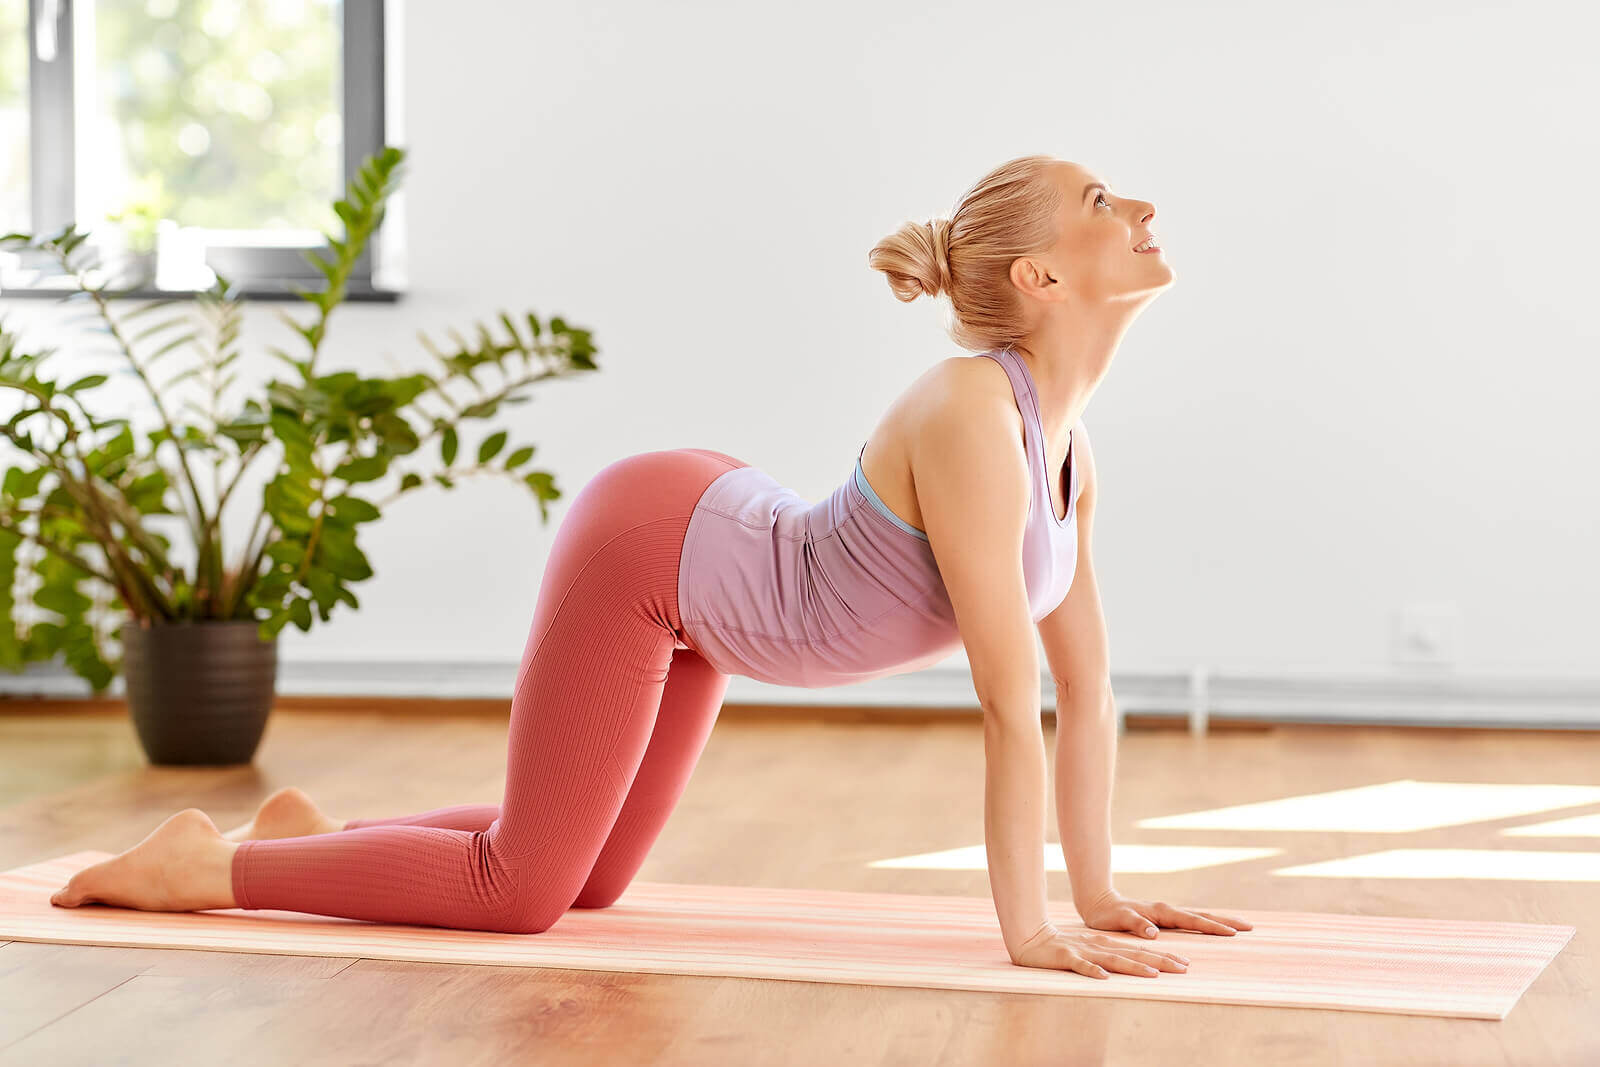 A woman performing a yoga exercise.